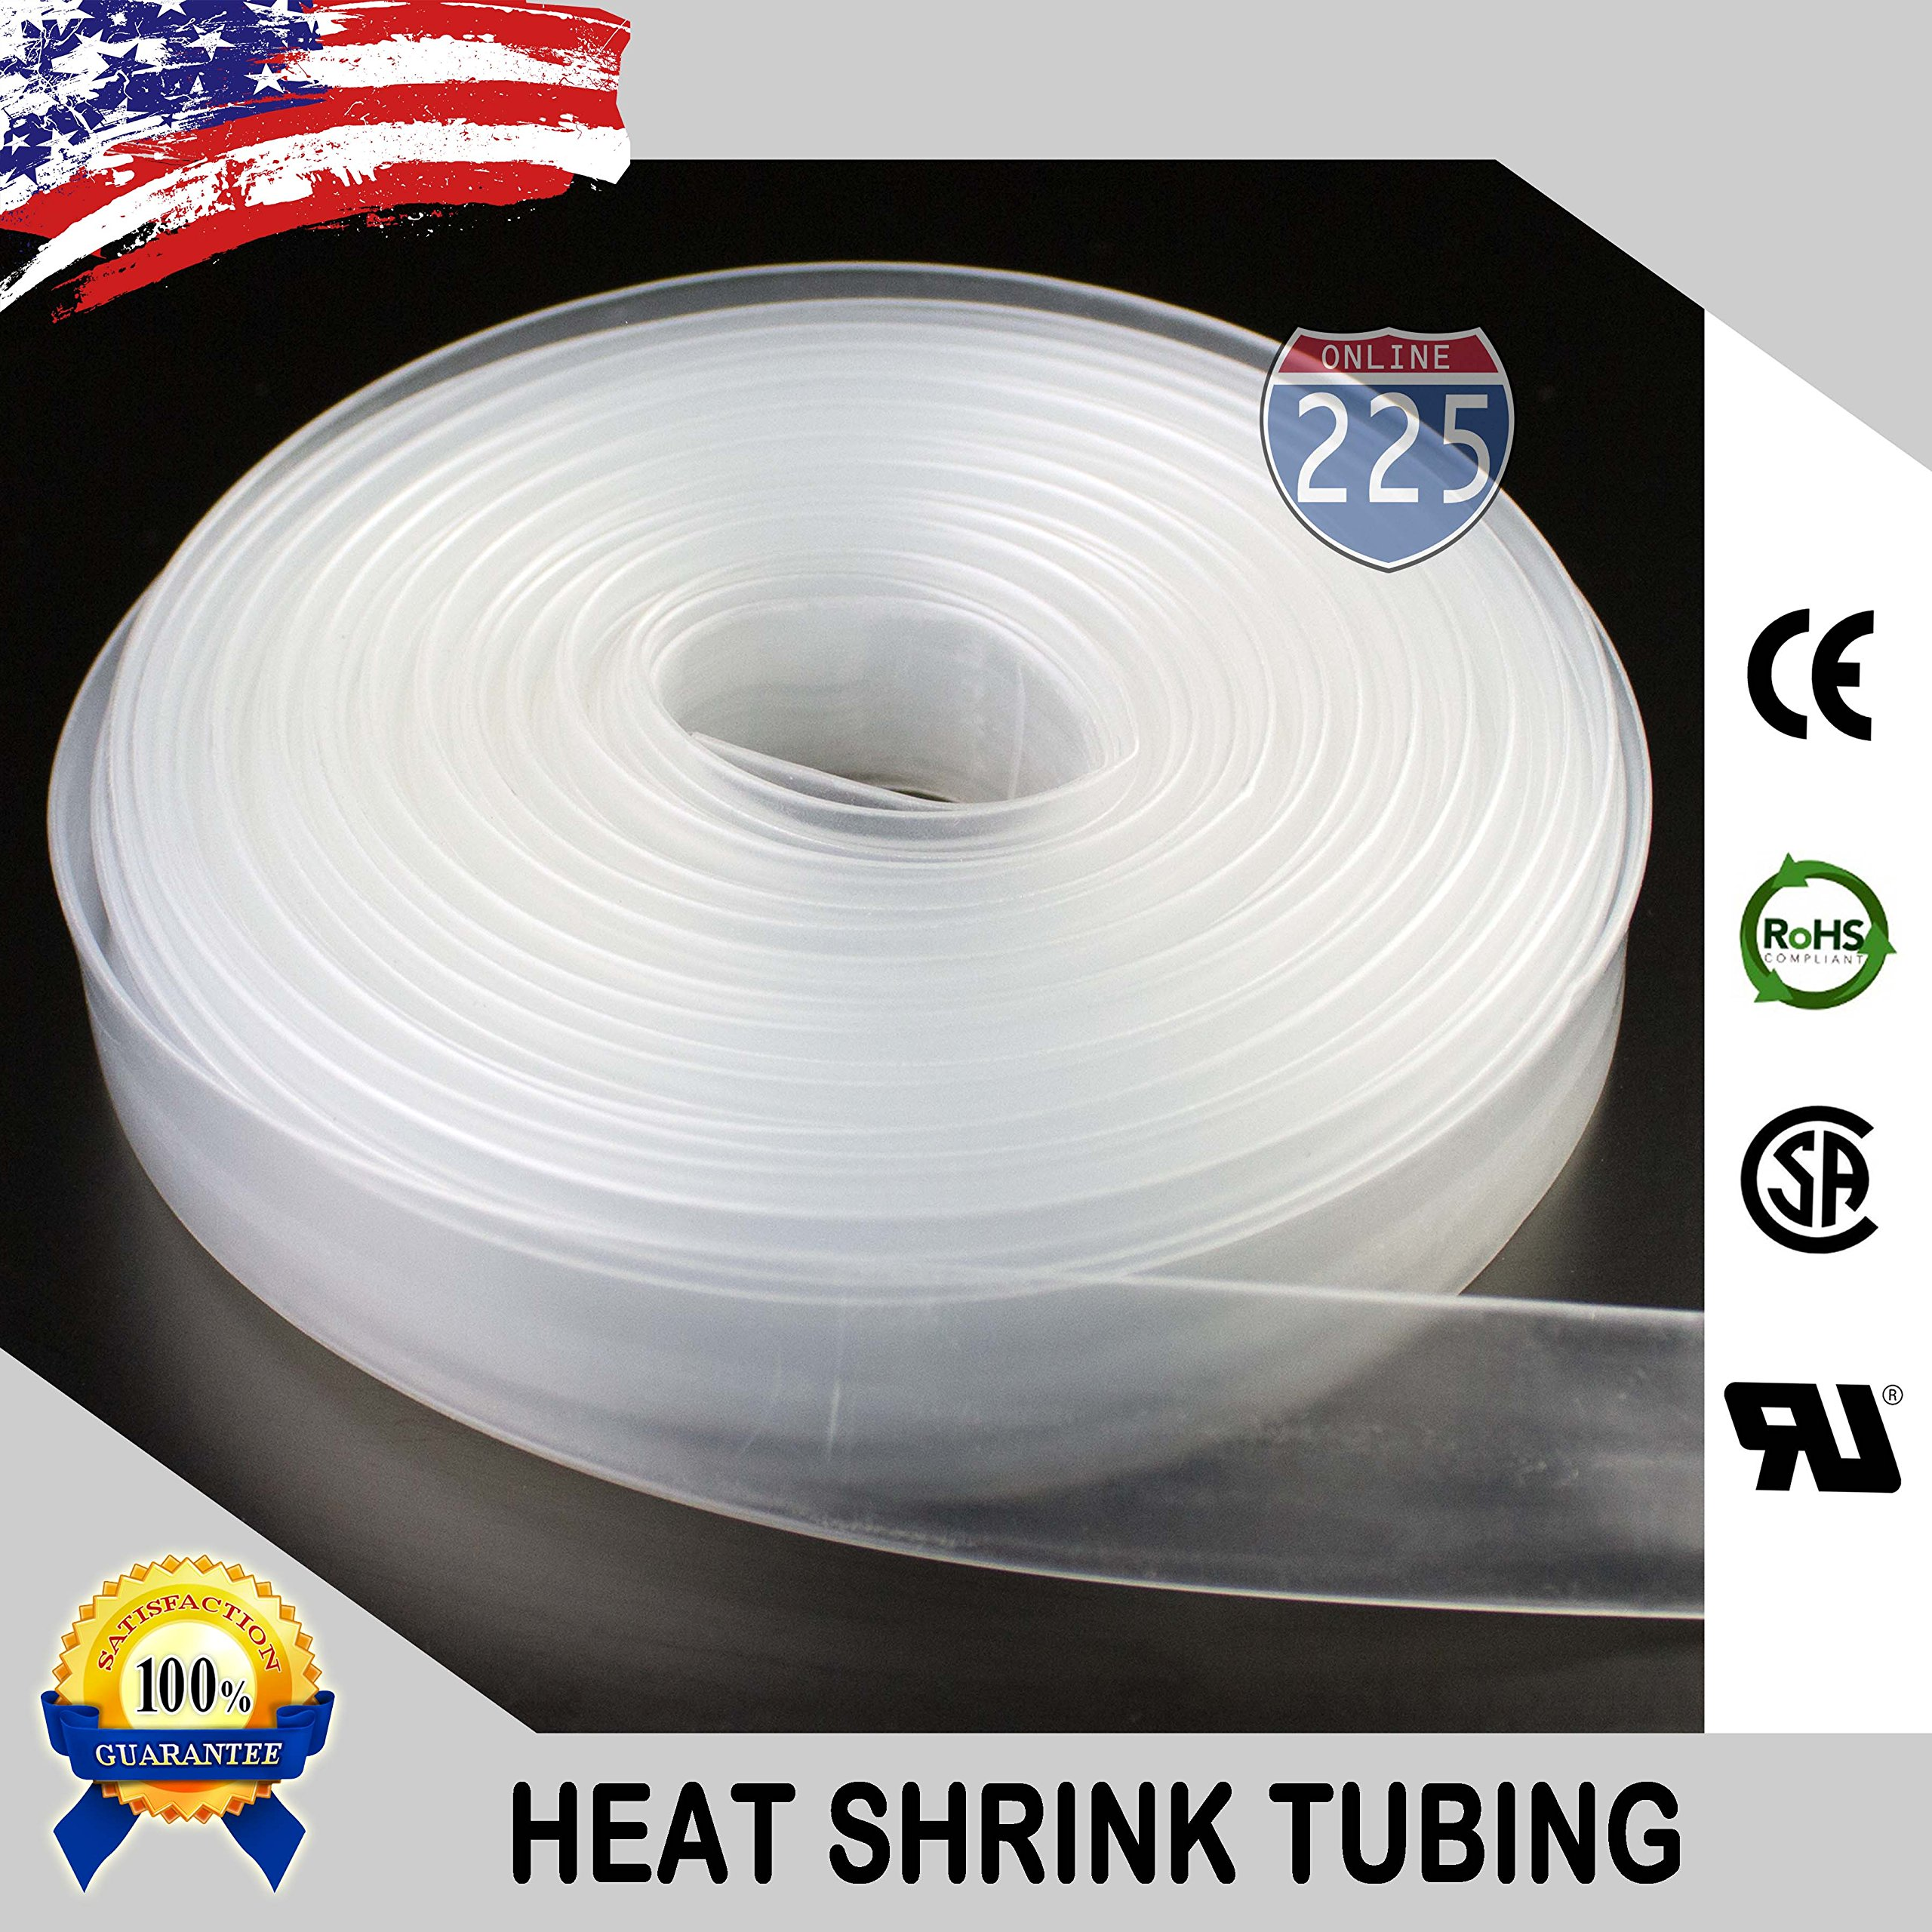 25 FT 3/4'' 19mm Polyolefin Clear Heat Shrink Tubing 2:1 Ratio